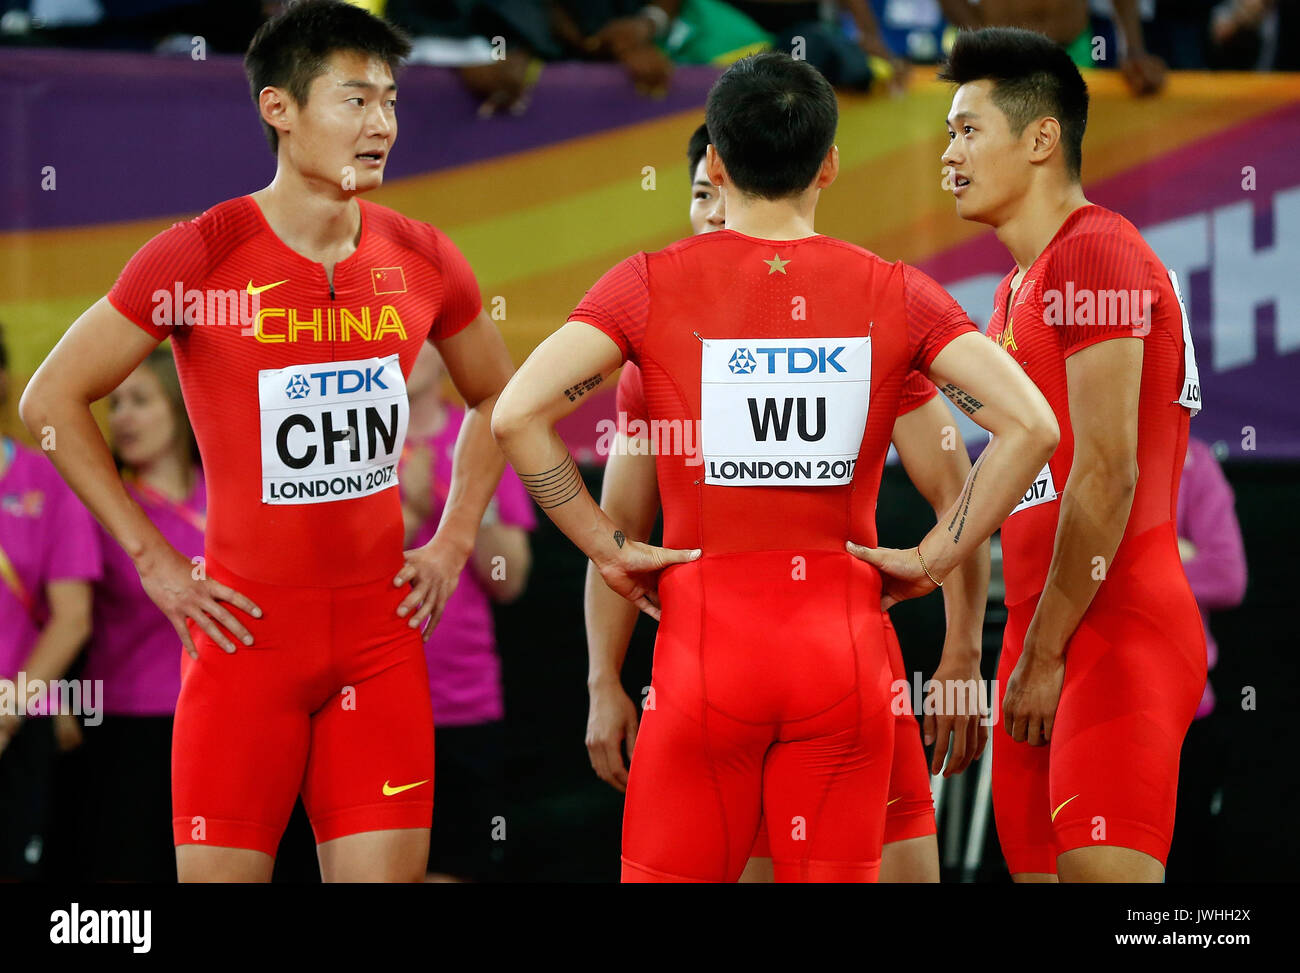 (170813) -- LONDON, Aug. 13, 2017 -- Team China react after the men's 4x100m relay final on Day 9 at the IAAF World Championships 2017 in London, Britain on Aug. 12, 2017. (Xinhua/Wang Lili) - Stock Image